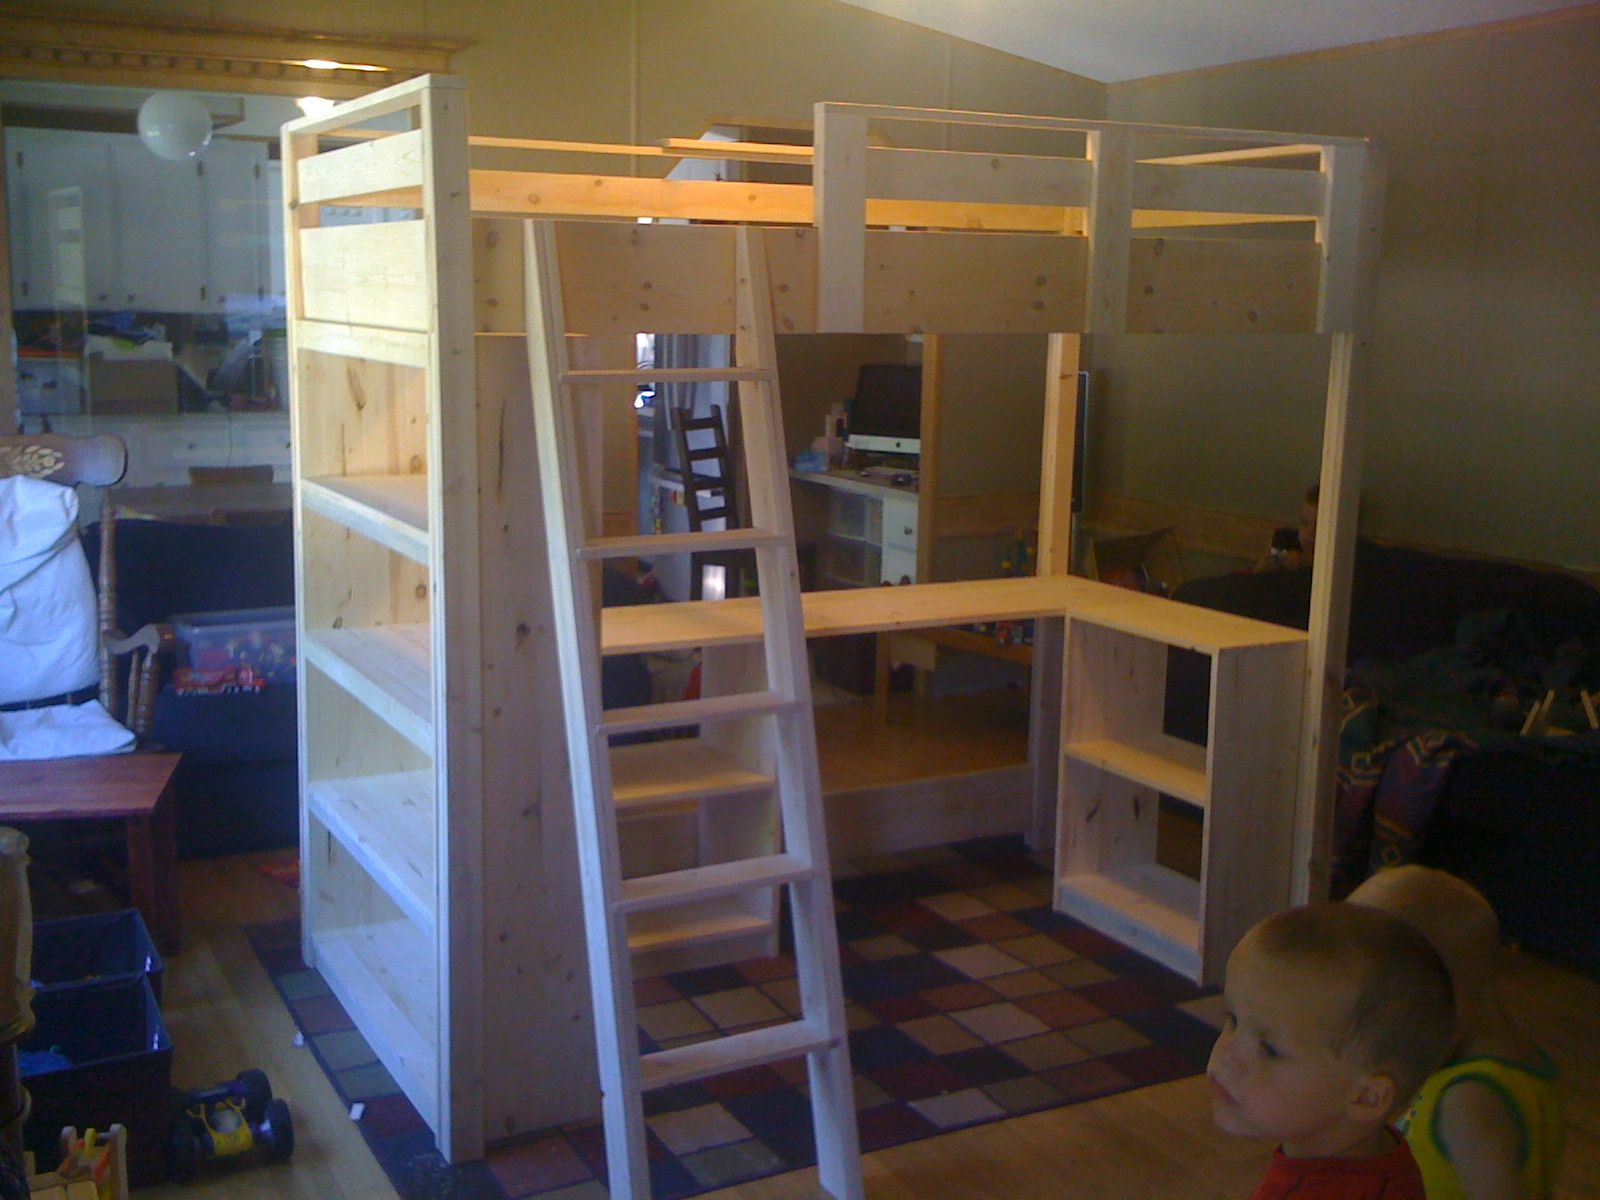 Building A Bunk Bed With Stairs Bunk Bed Stairs Plans Build Safe Bunk Bed Bunk Beds Is